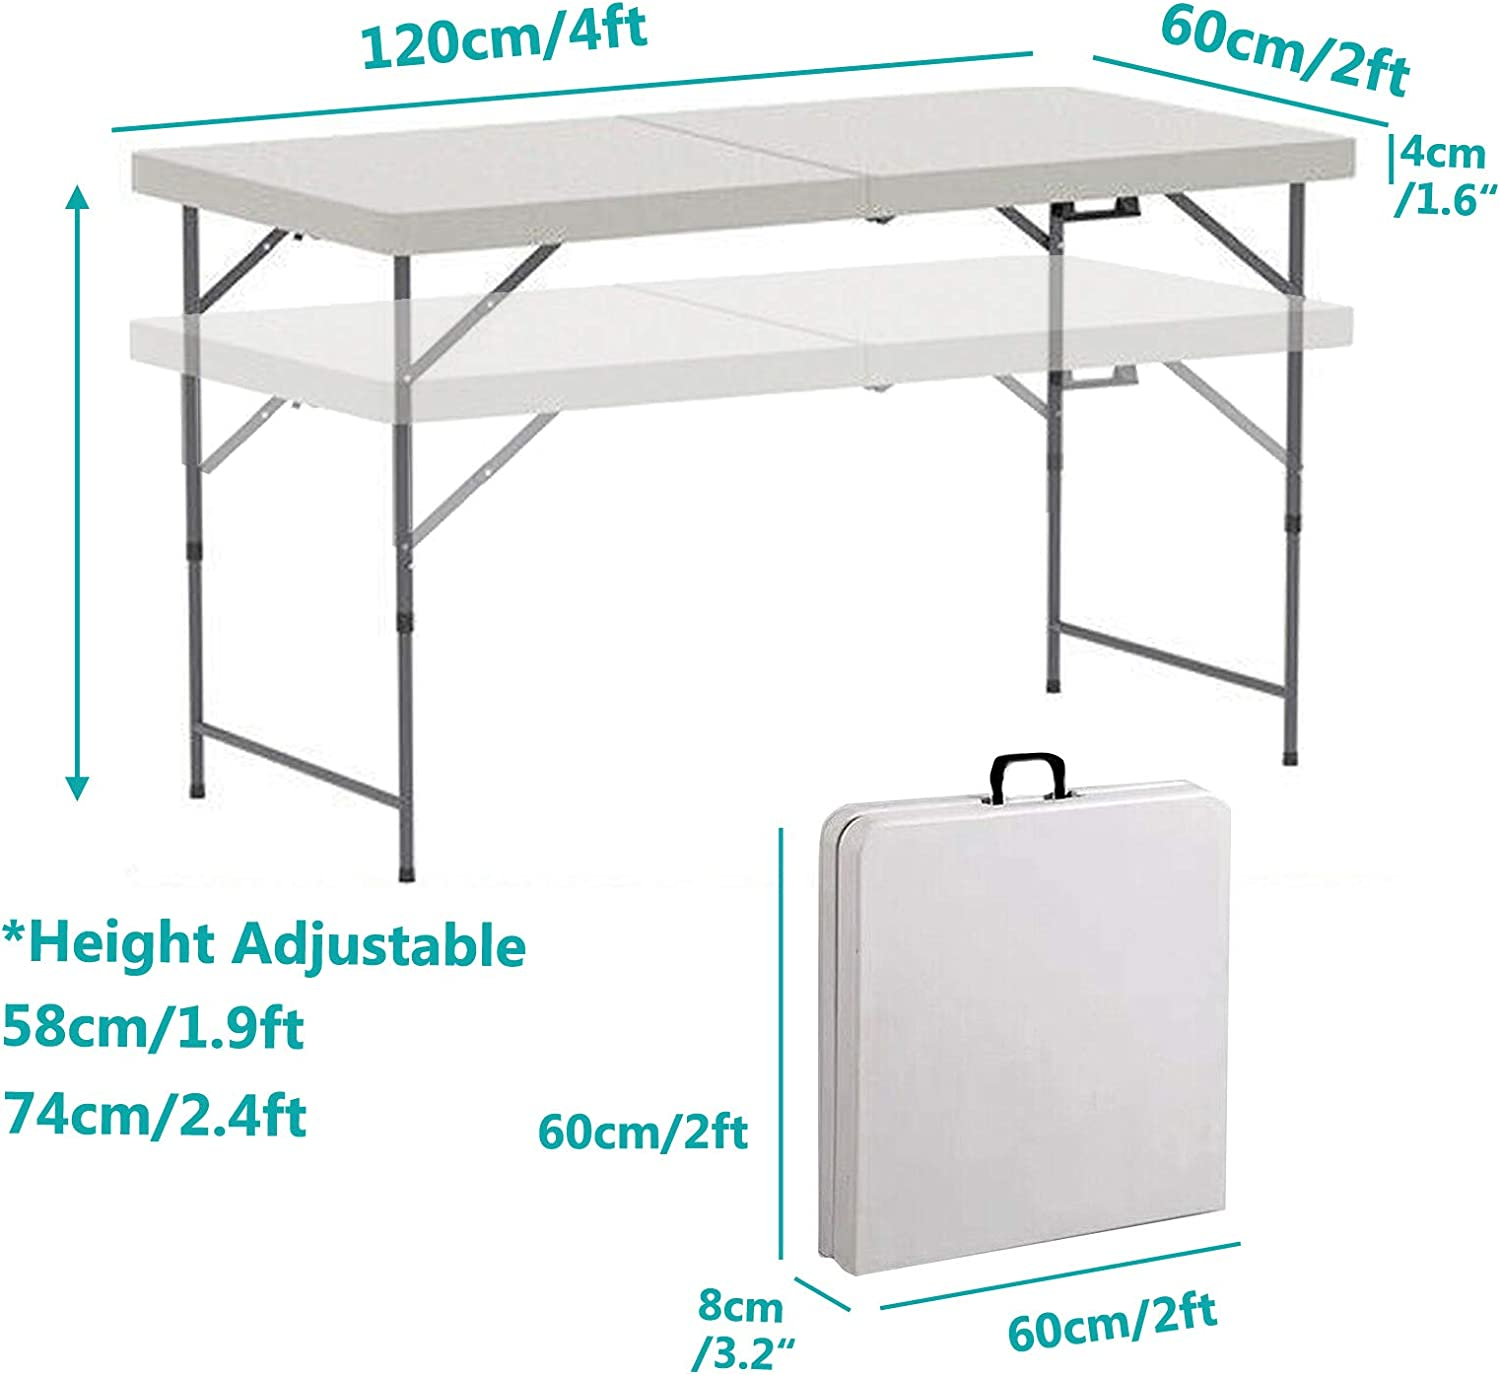 Folding Table 4FT Plastic Top Heavy Duty Steel Frame Foldable Fold in Half Portable Adjustable Height Picnic Party Camping Outdoor Event Catering Trestle BBQ Buffet Heavy Duty 4x2x2.4ft